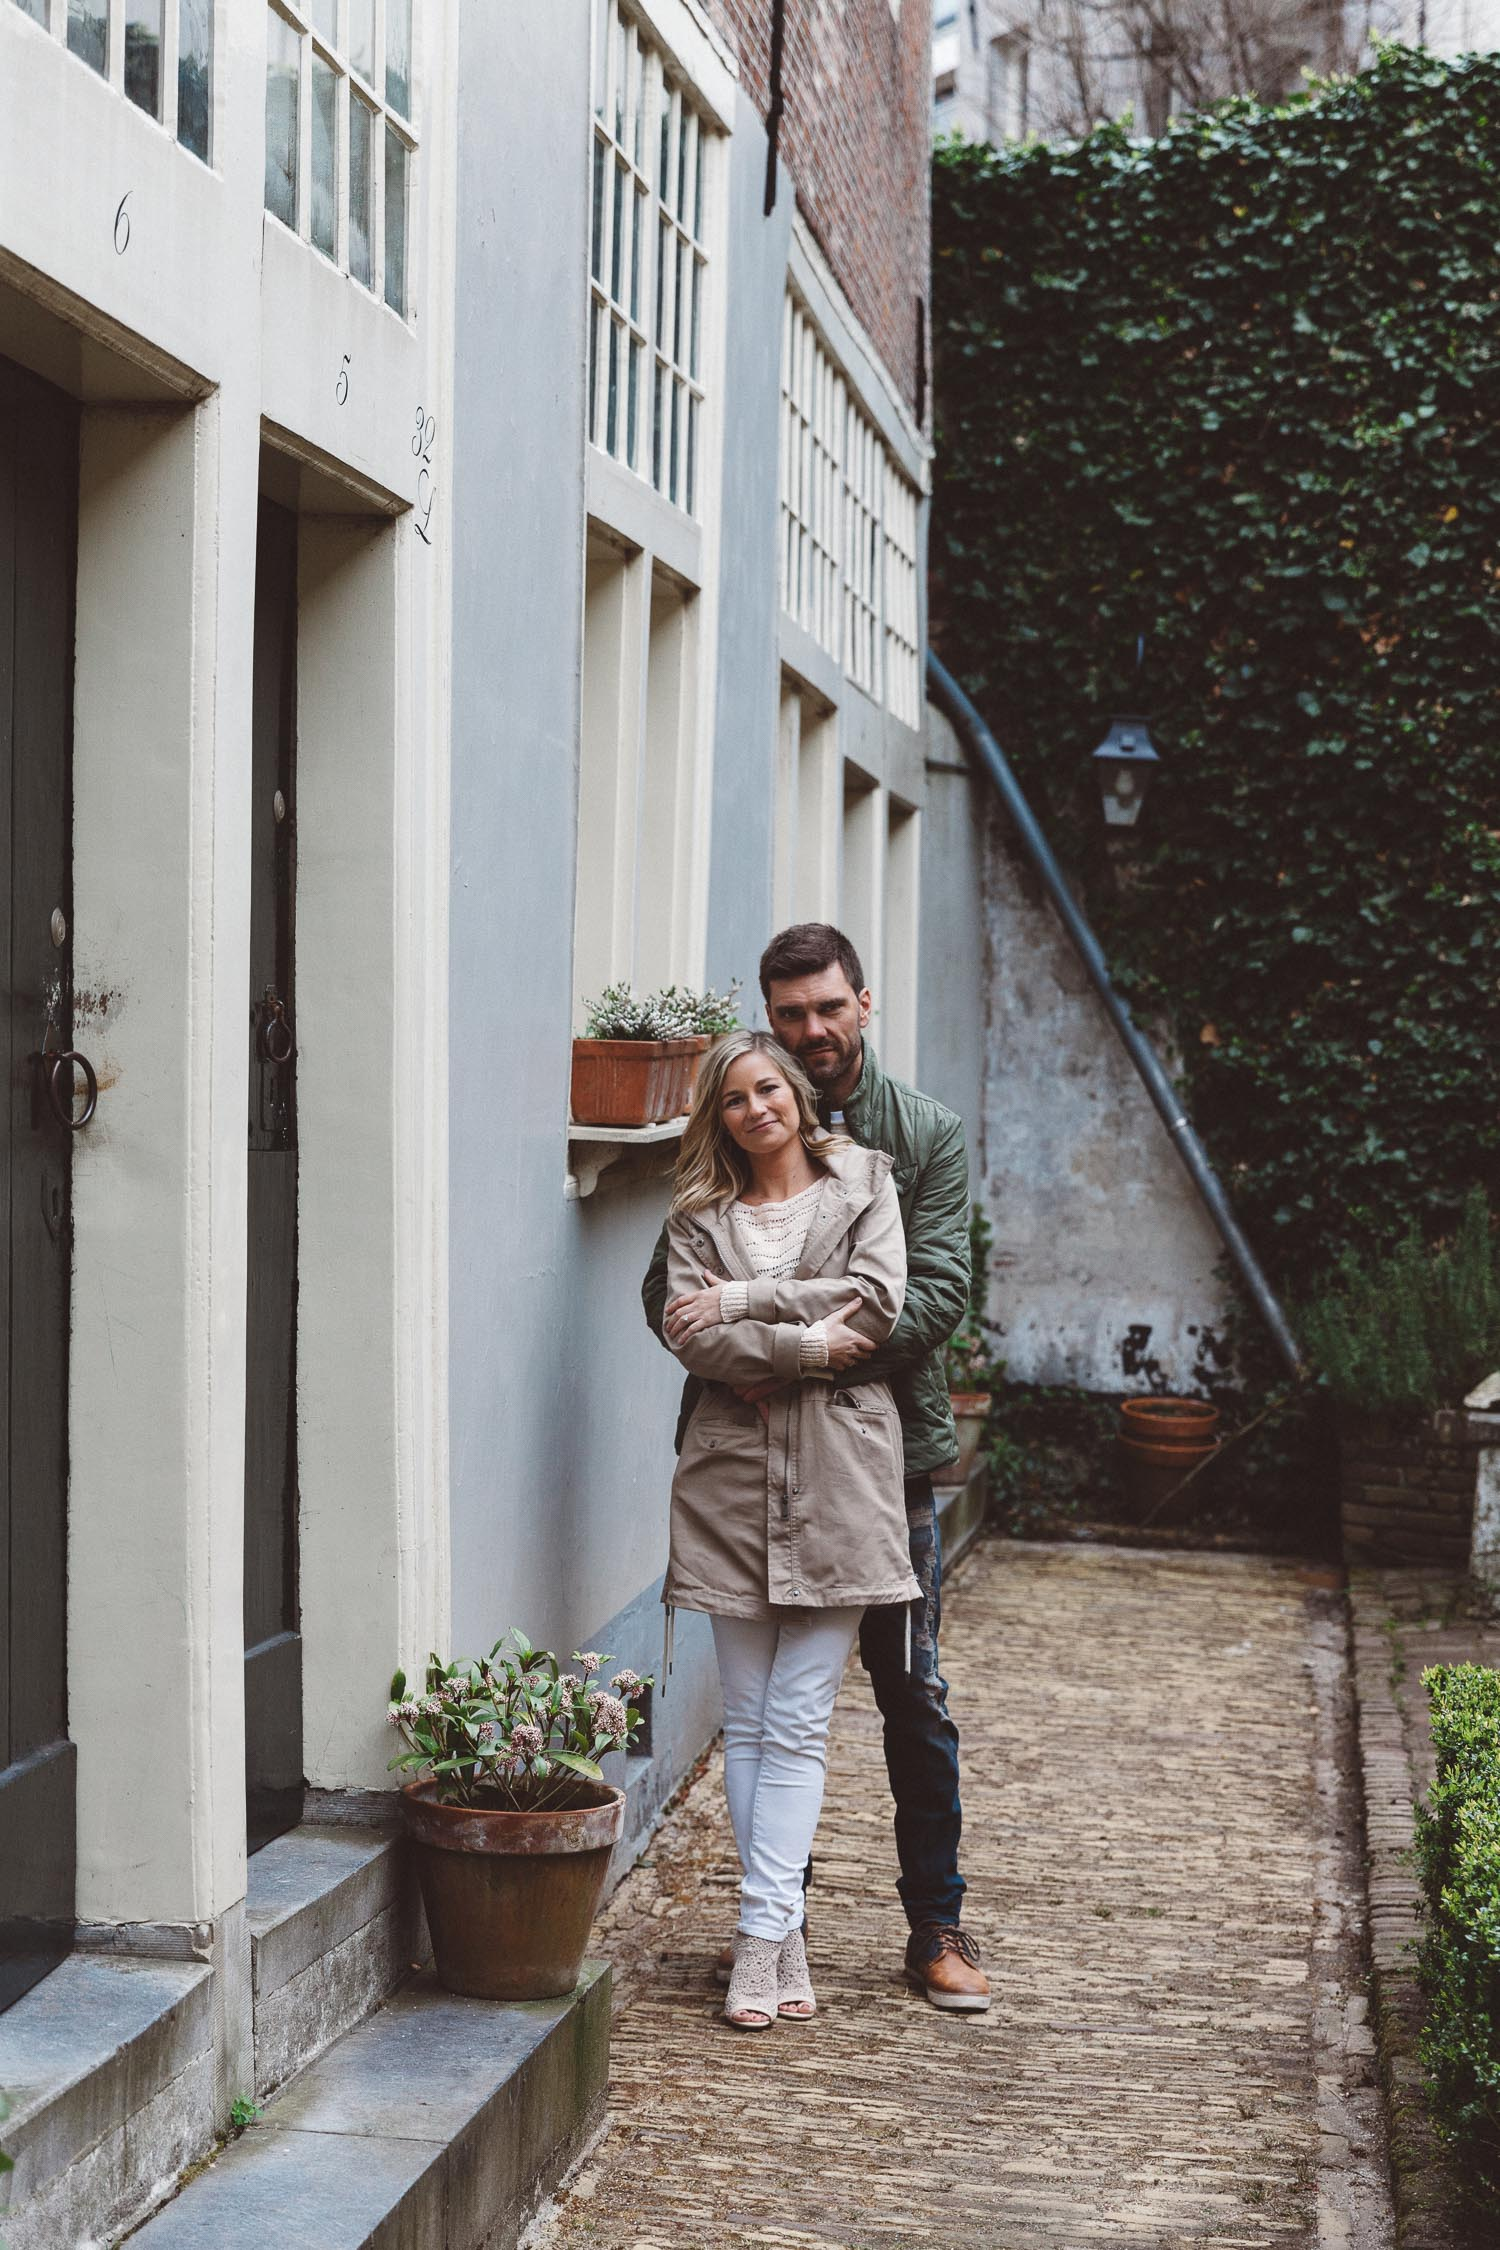 Engagement-shoot-Jessica-and-JJ-by-On-a-hazy-morning-Amsterdam-36.jpg